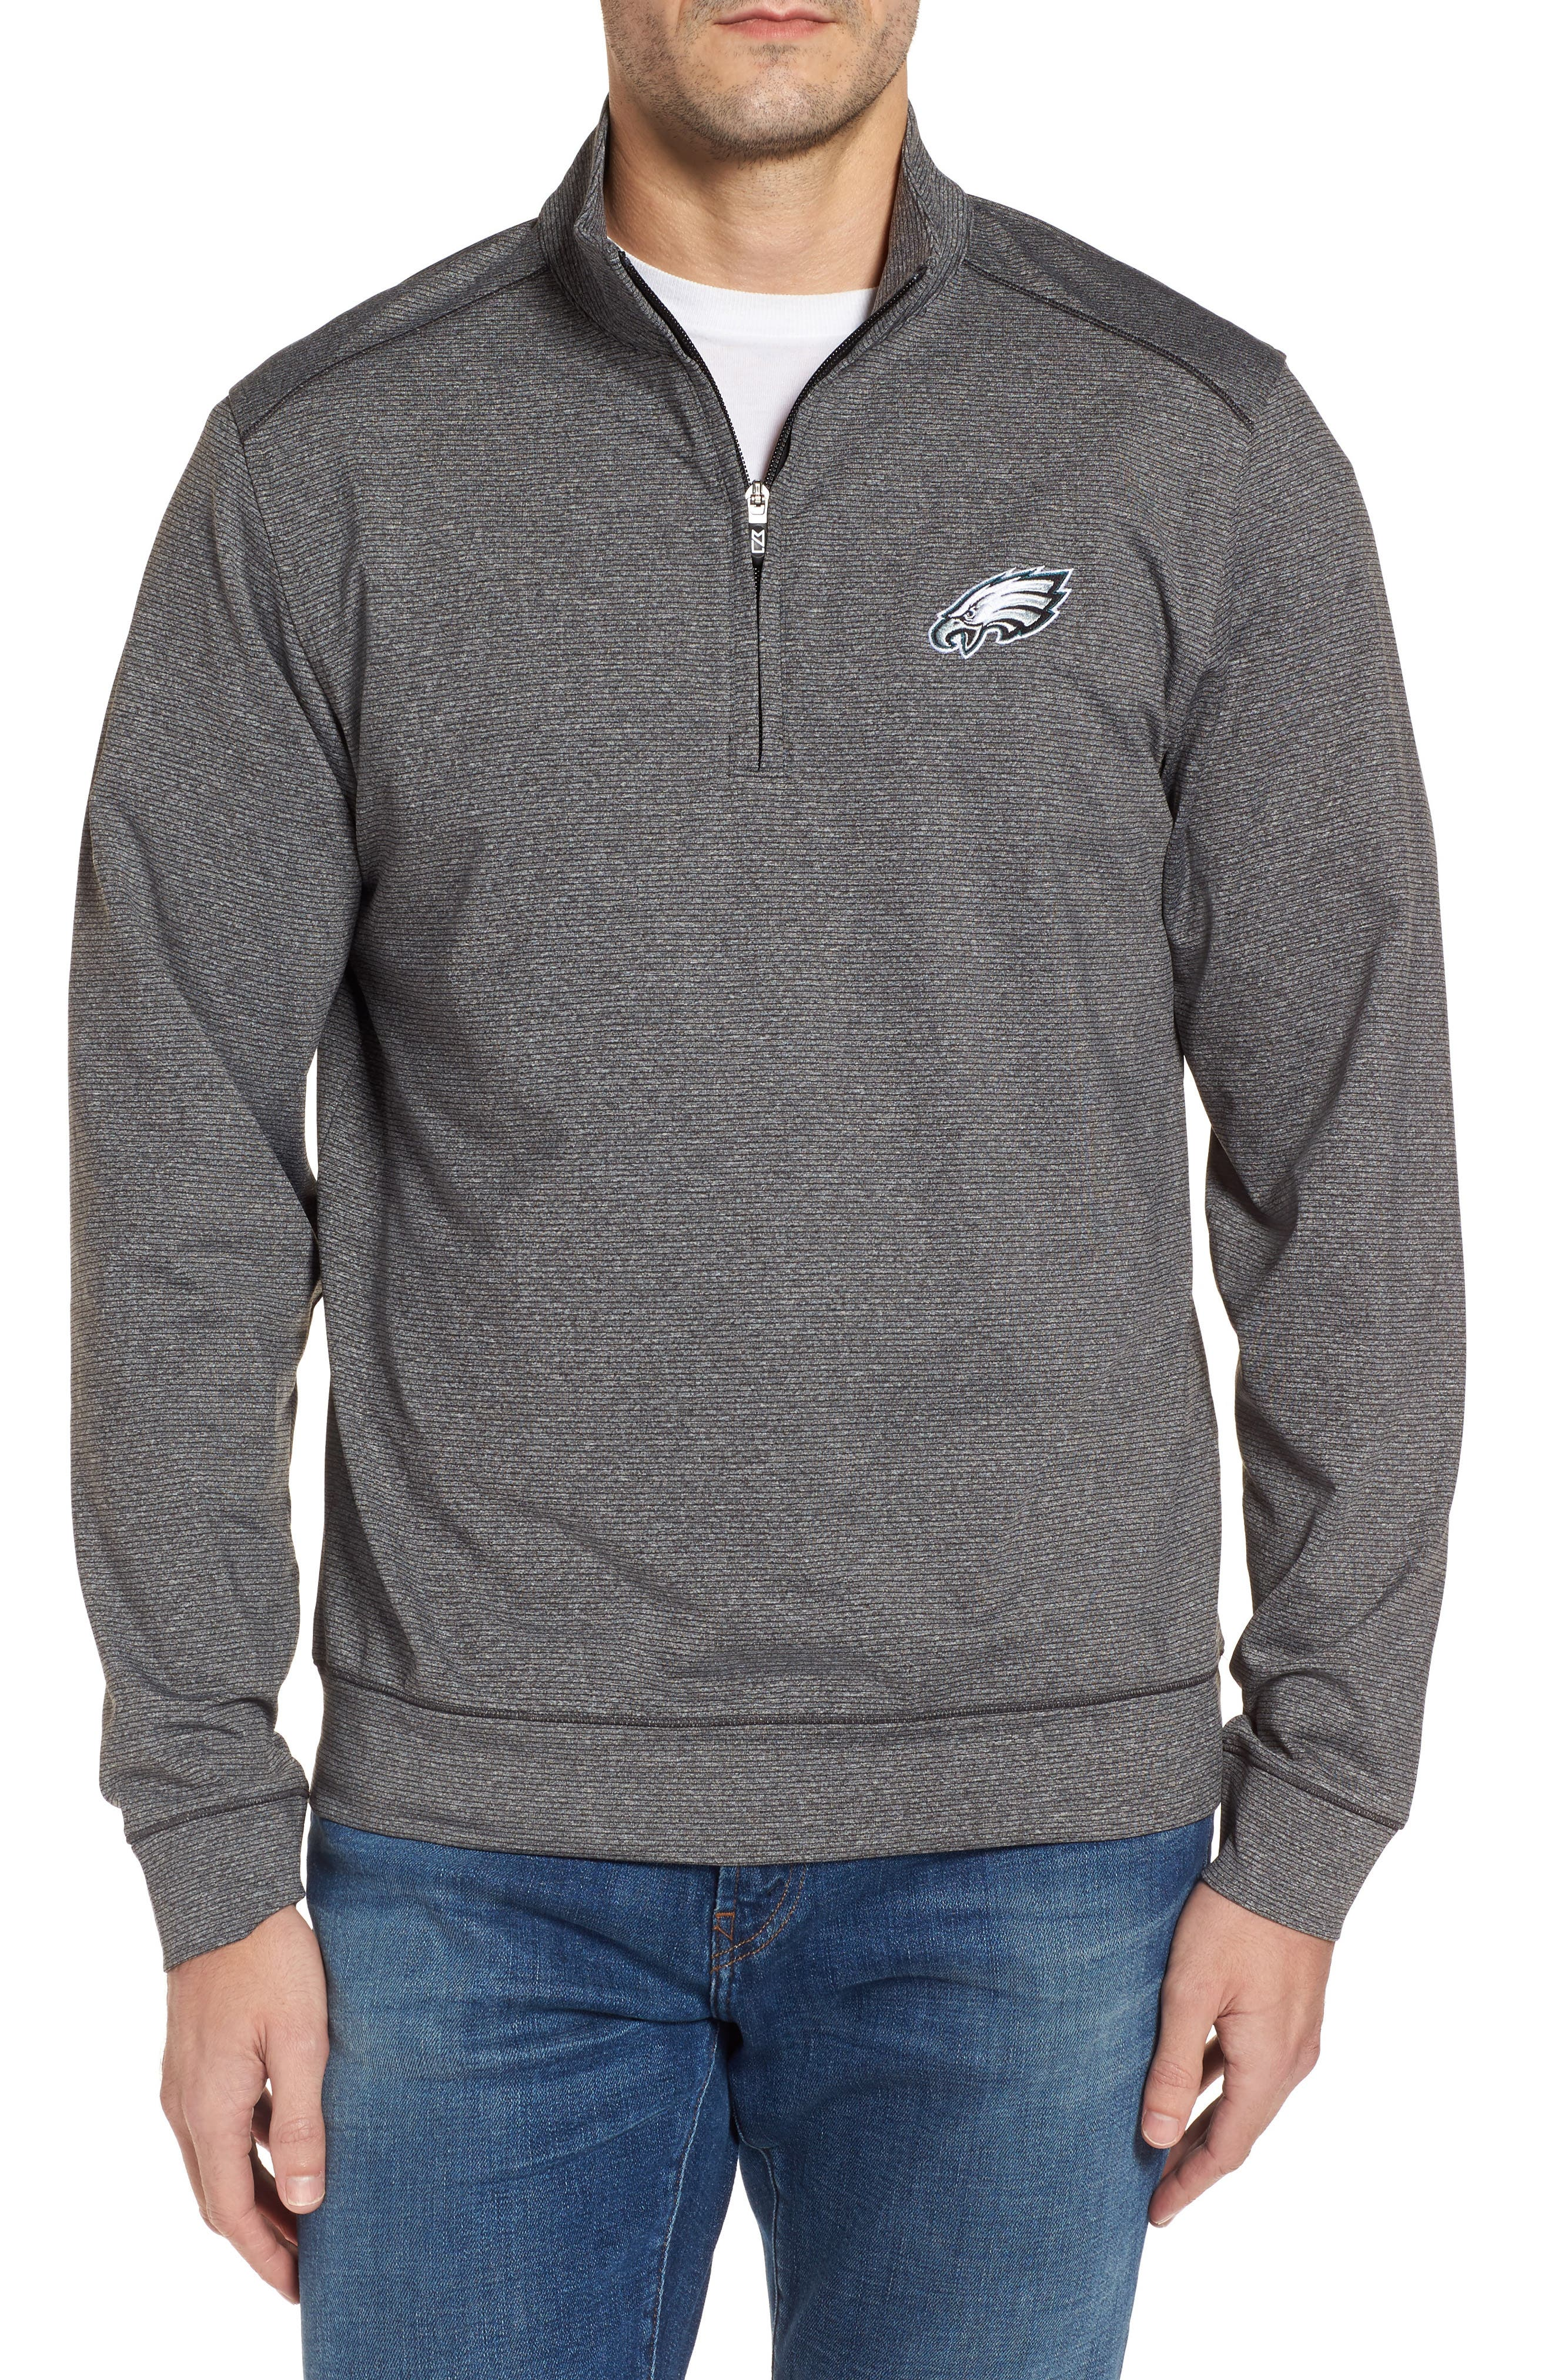 Cutter & Buck Shoreline - Philadelphia Eagles Half Zip Pullover